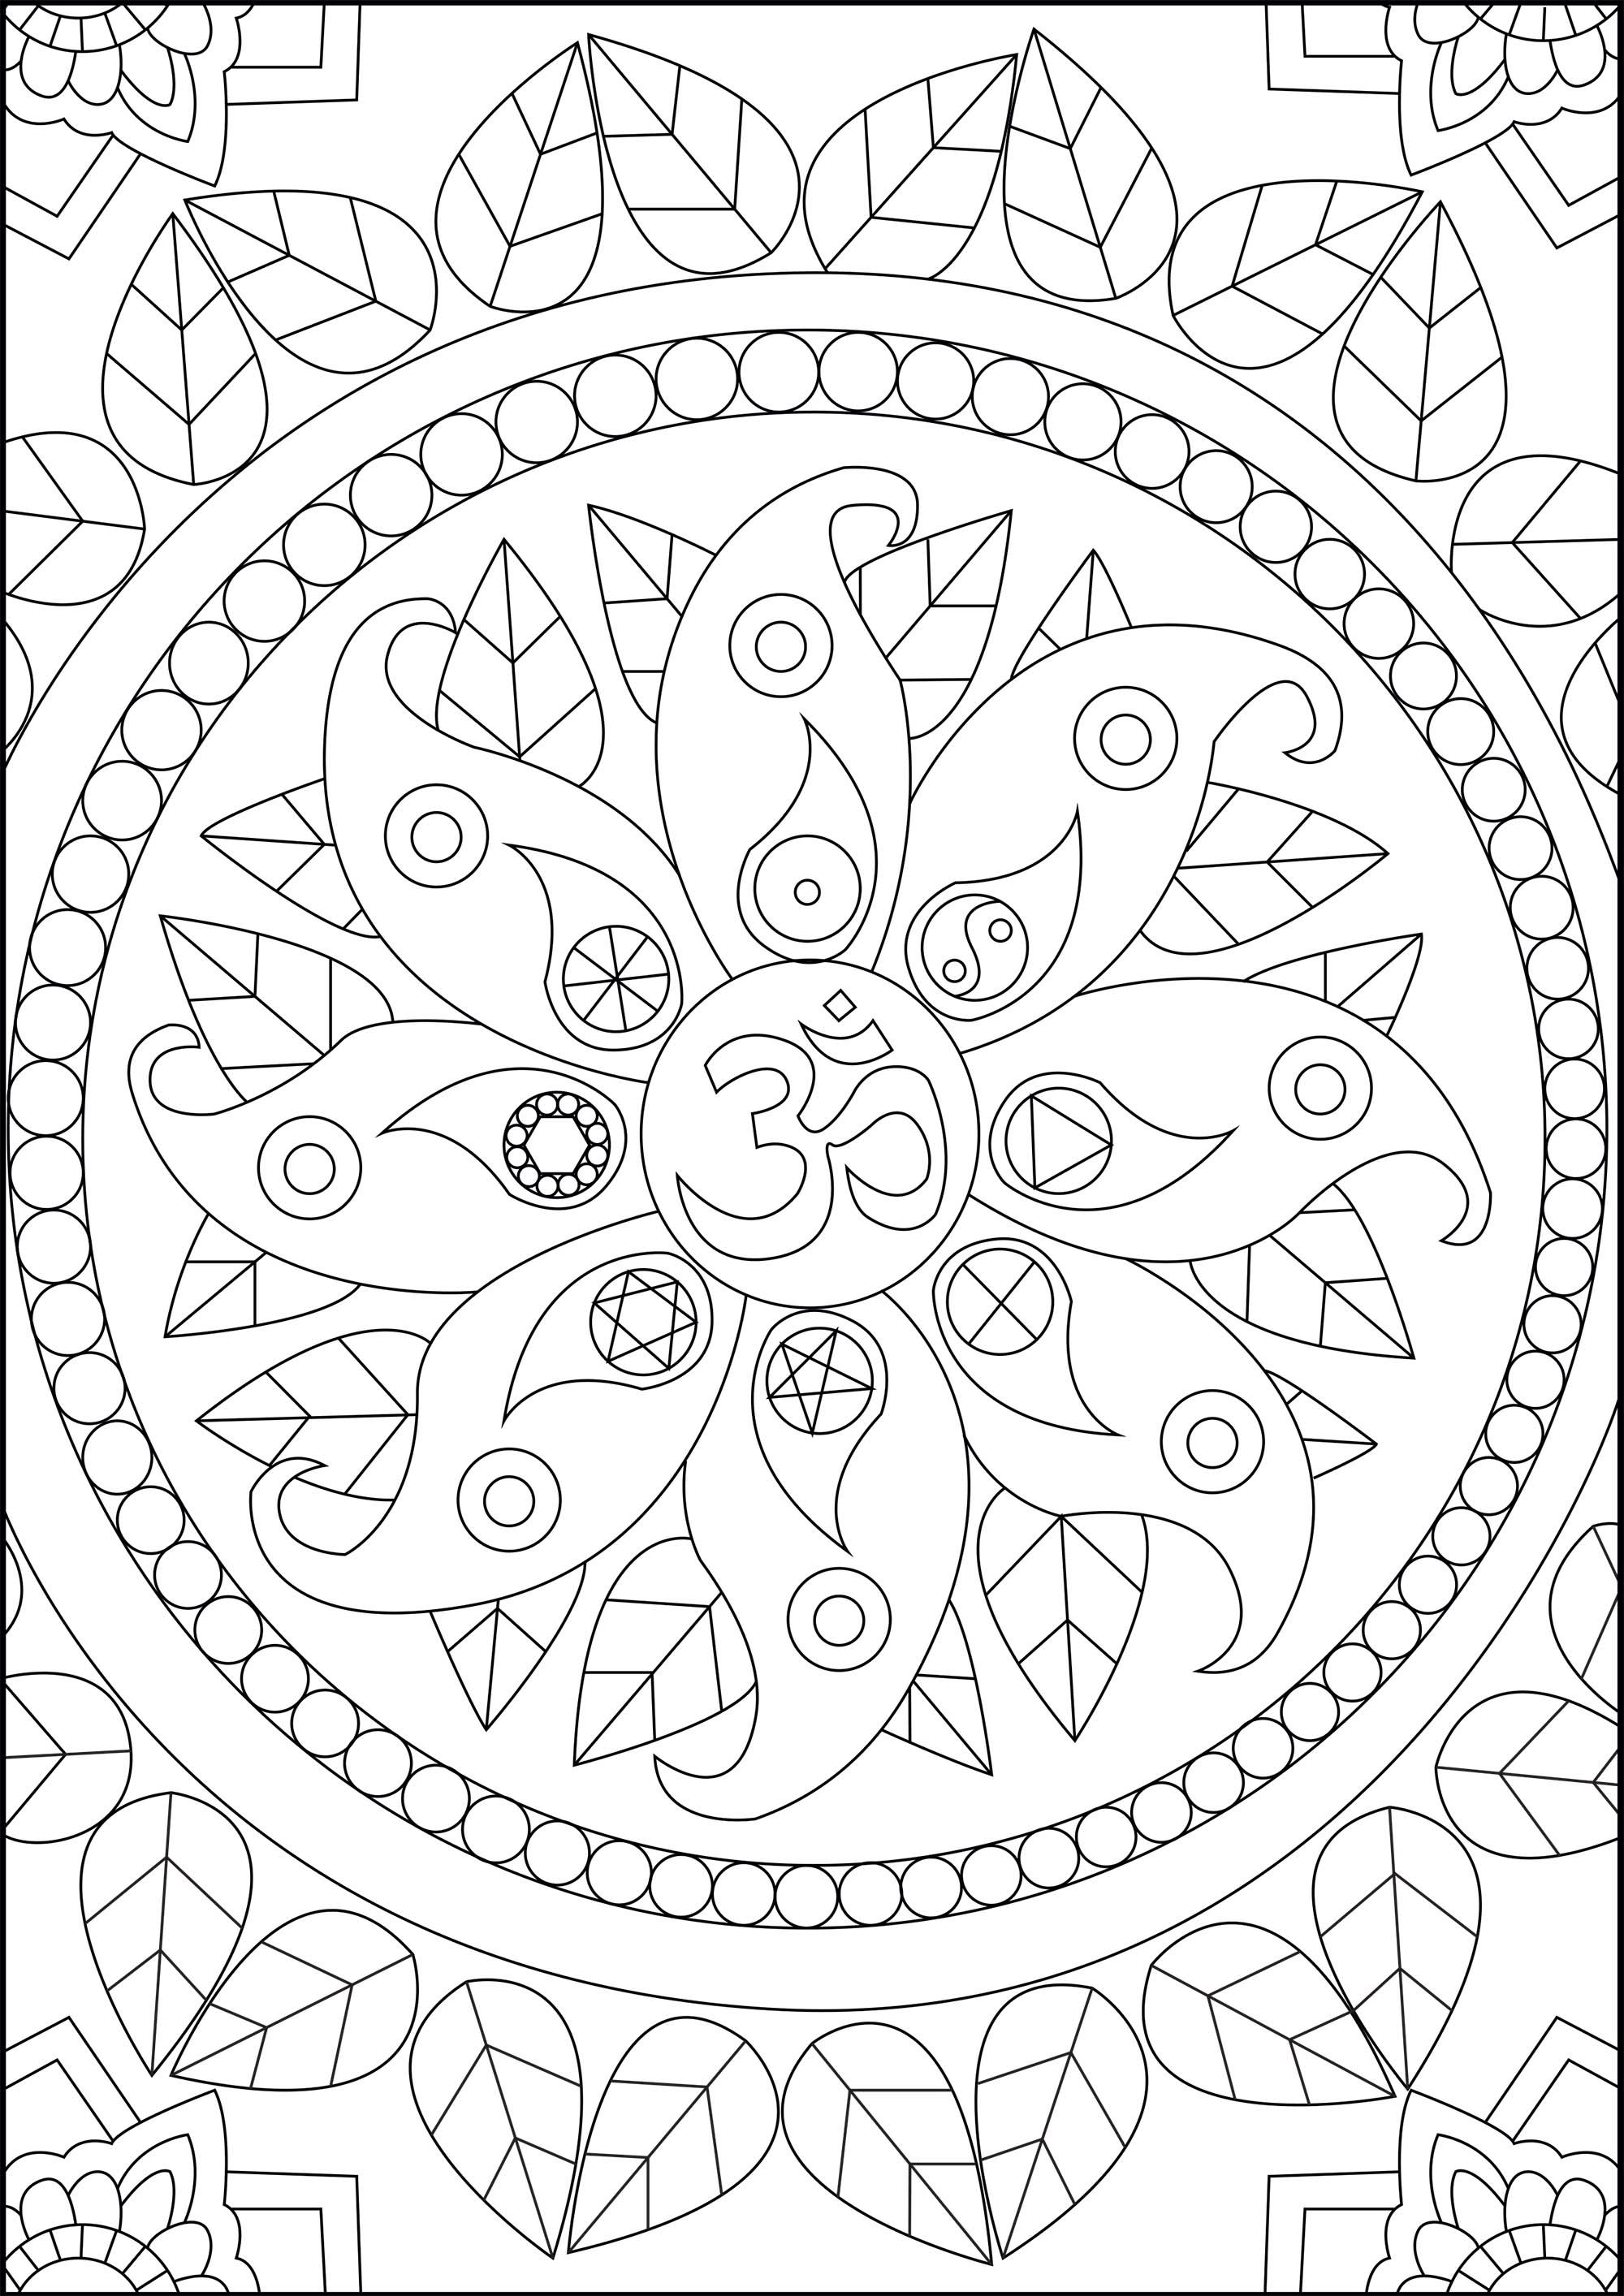 Find Inner Peace With This Coloring Page Featuring Various Zen Symbols Including The Om Om I Mandala Coloring Pages Coloring Pages Paisley Coloring Pages